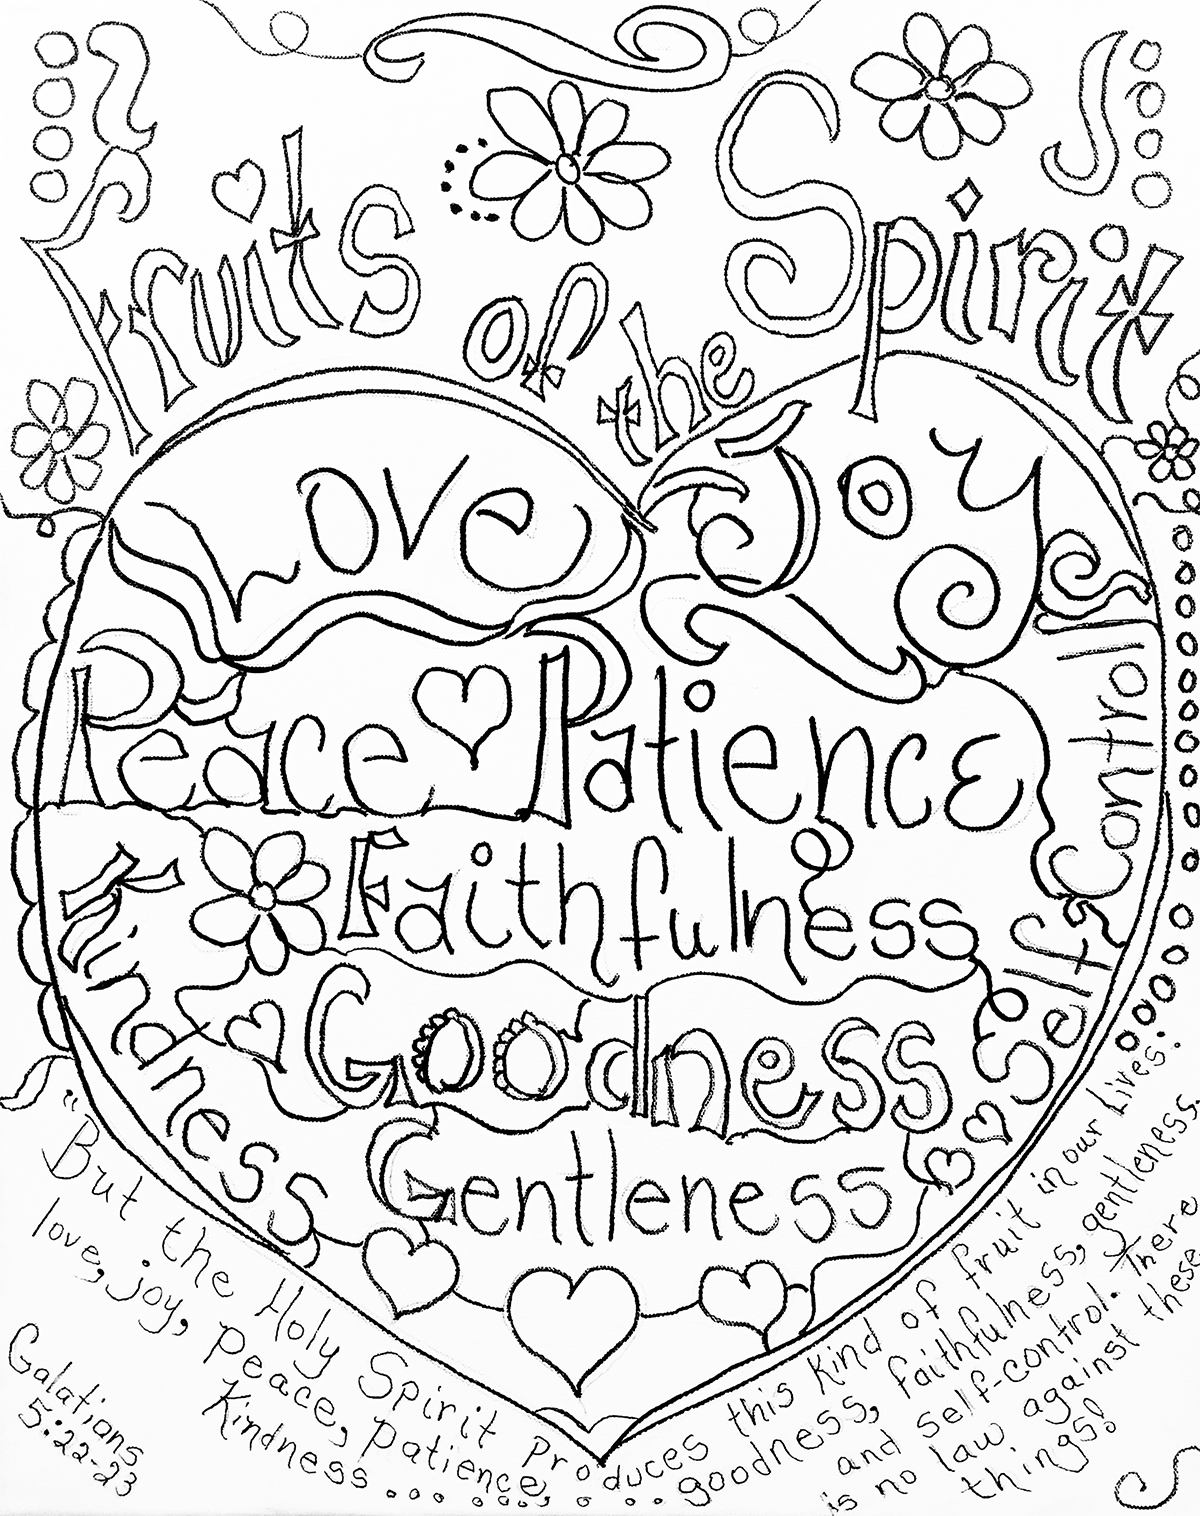 fruits of the spirit coloring pages fruit of the spirit coloring page École du dimanche of the fruits pages spirit coloring